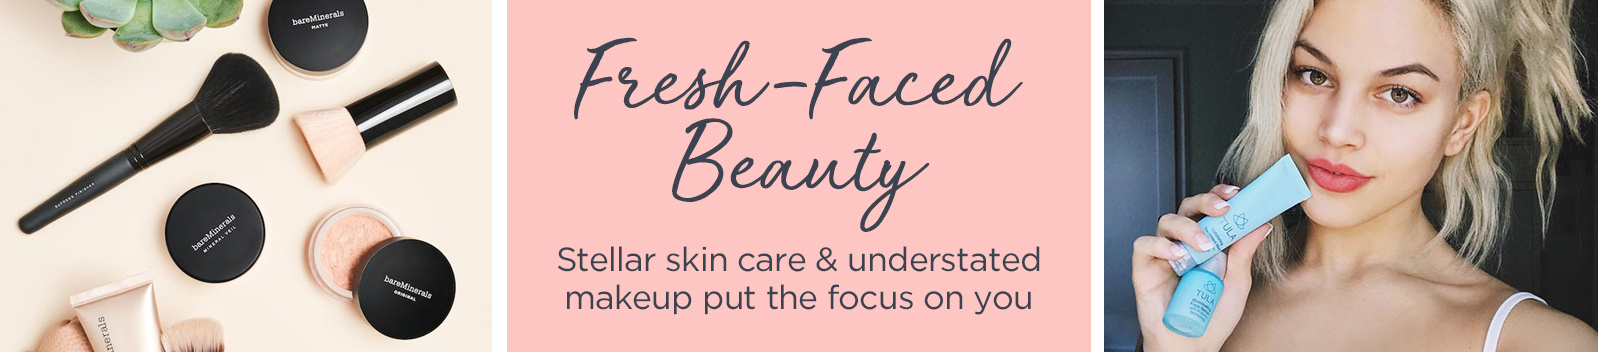 Fresh-Faced Beauty  Stellar skin care & understated makeup put the focus on you